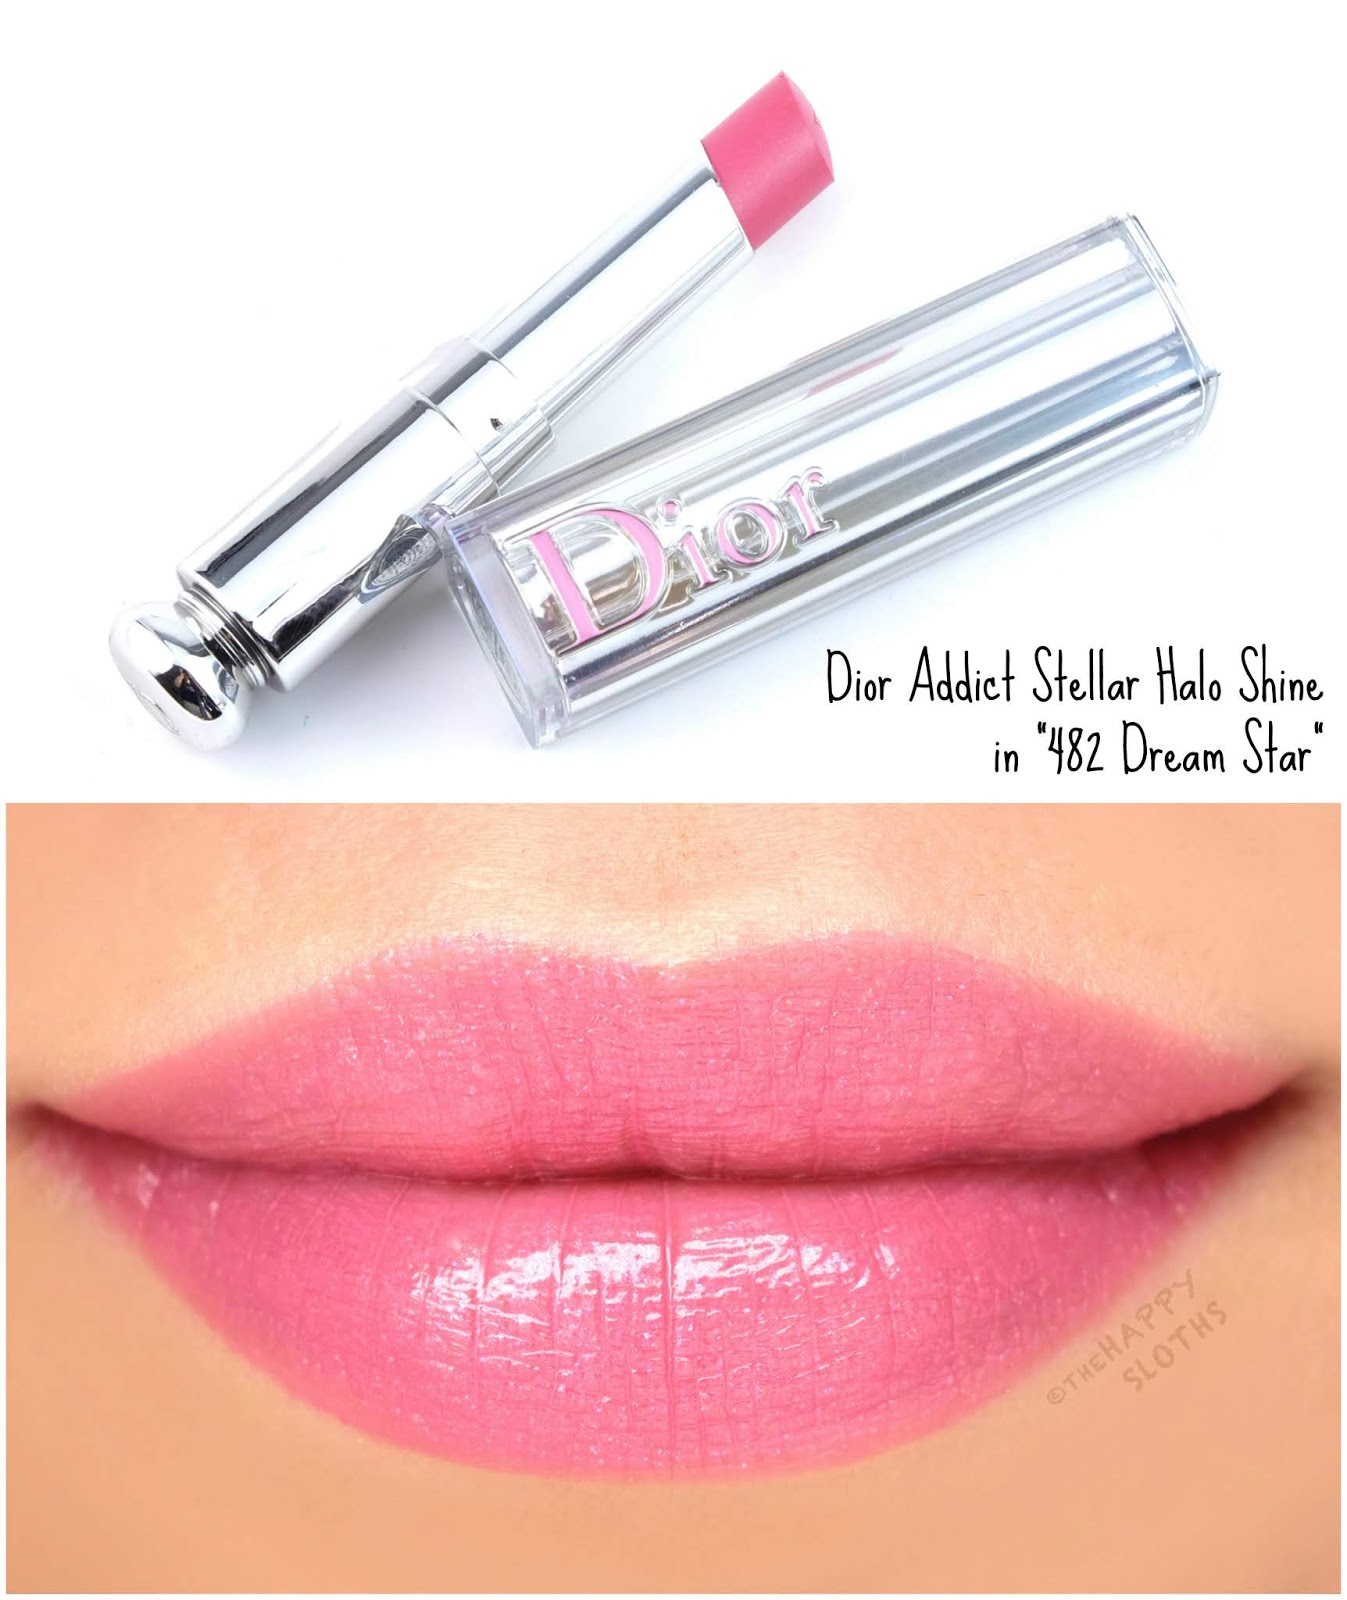 "Dior | Dior Addict Stellar Halo Shine Lipstick in ""482 Dream Star"": Review and Swatches"